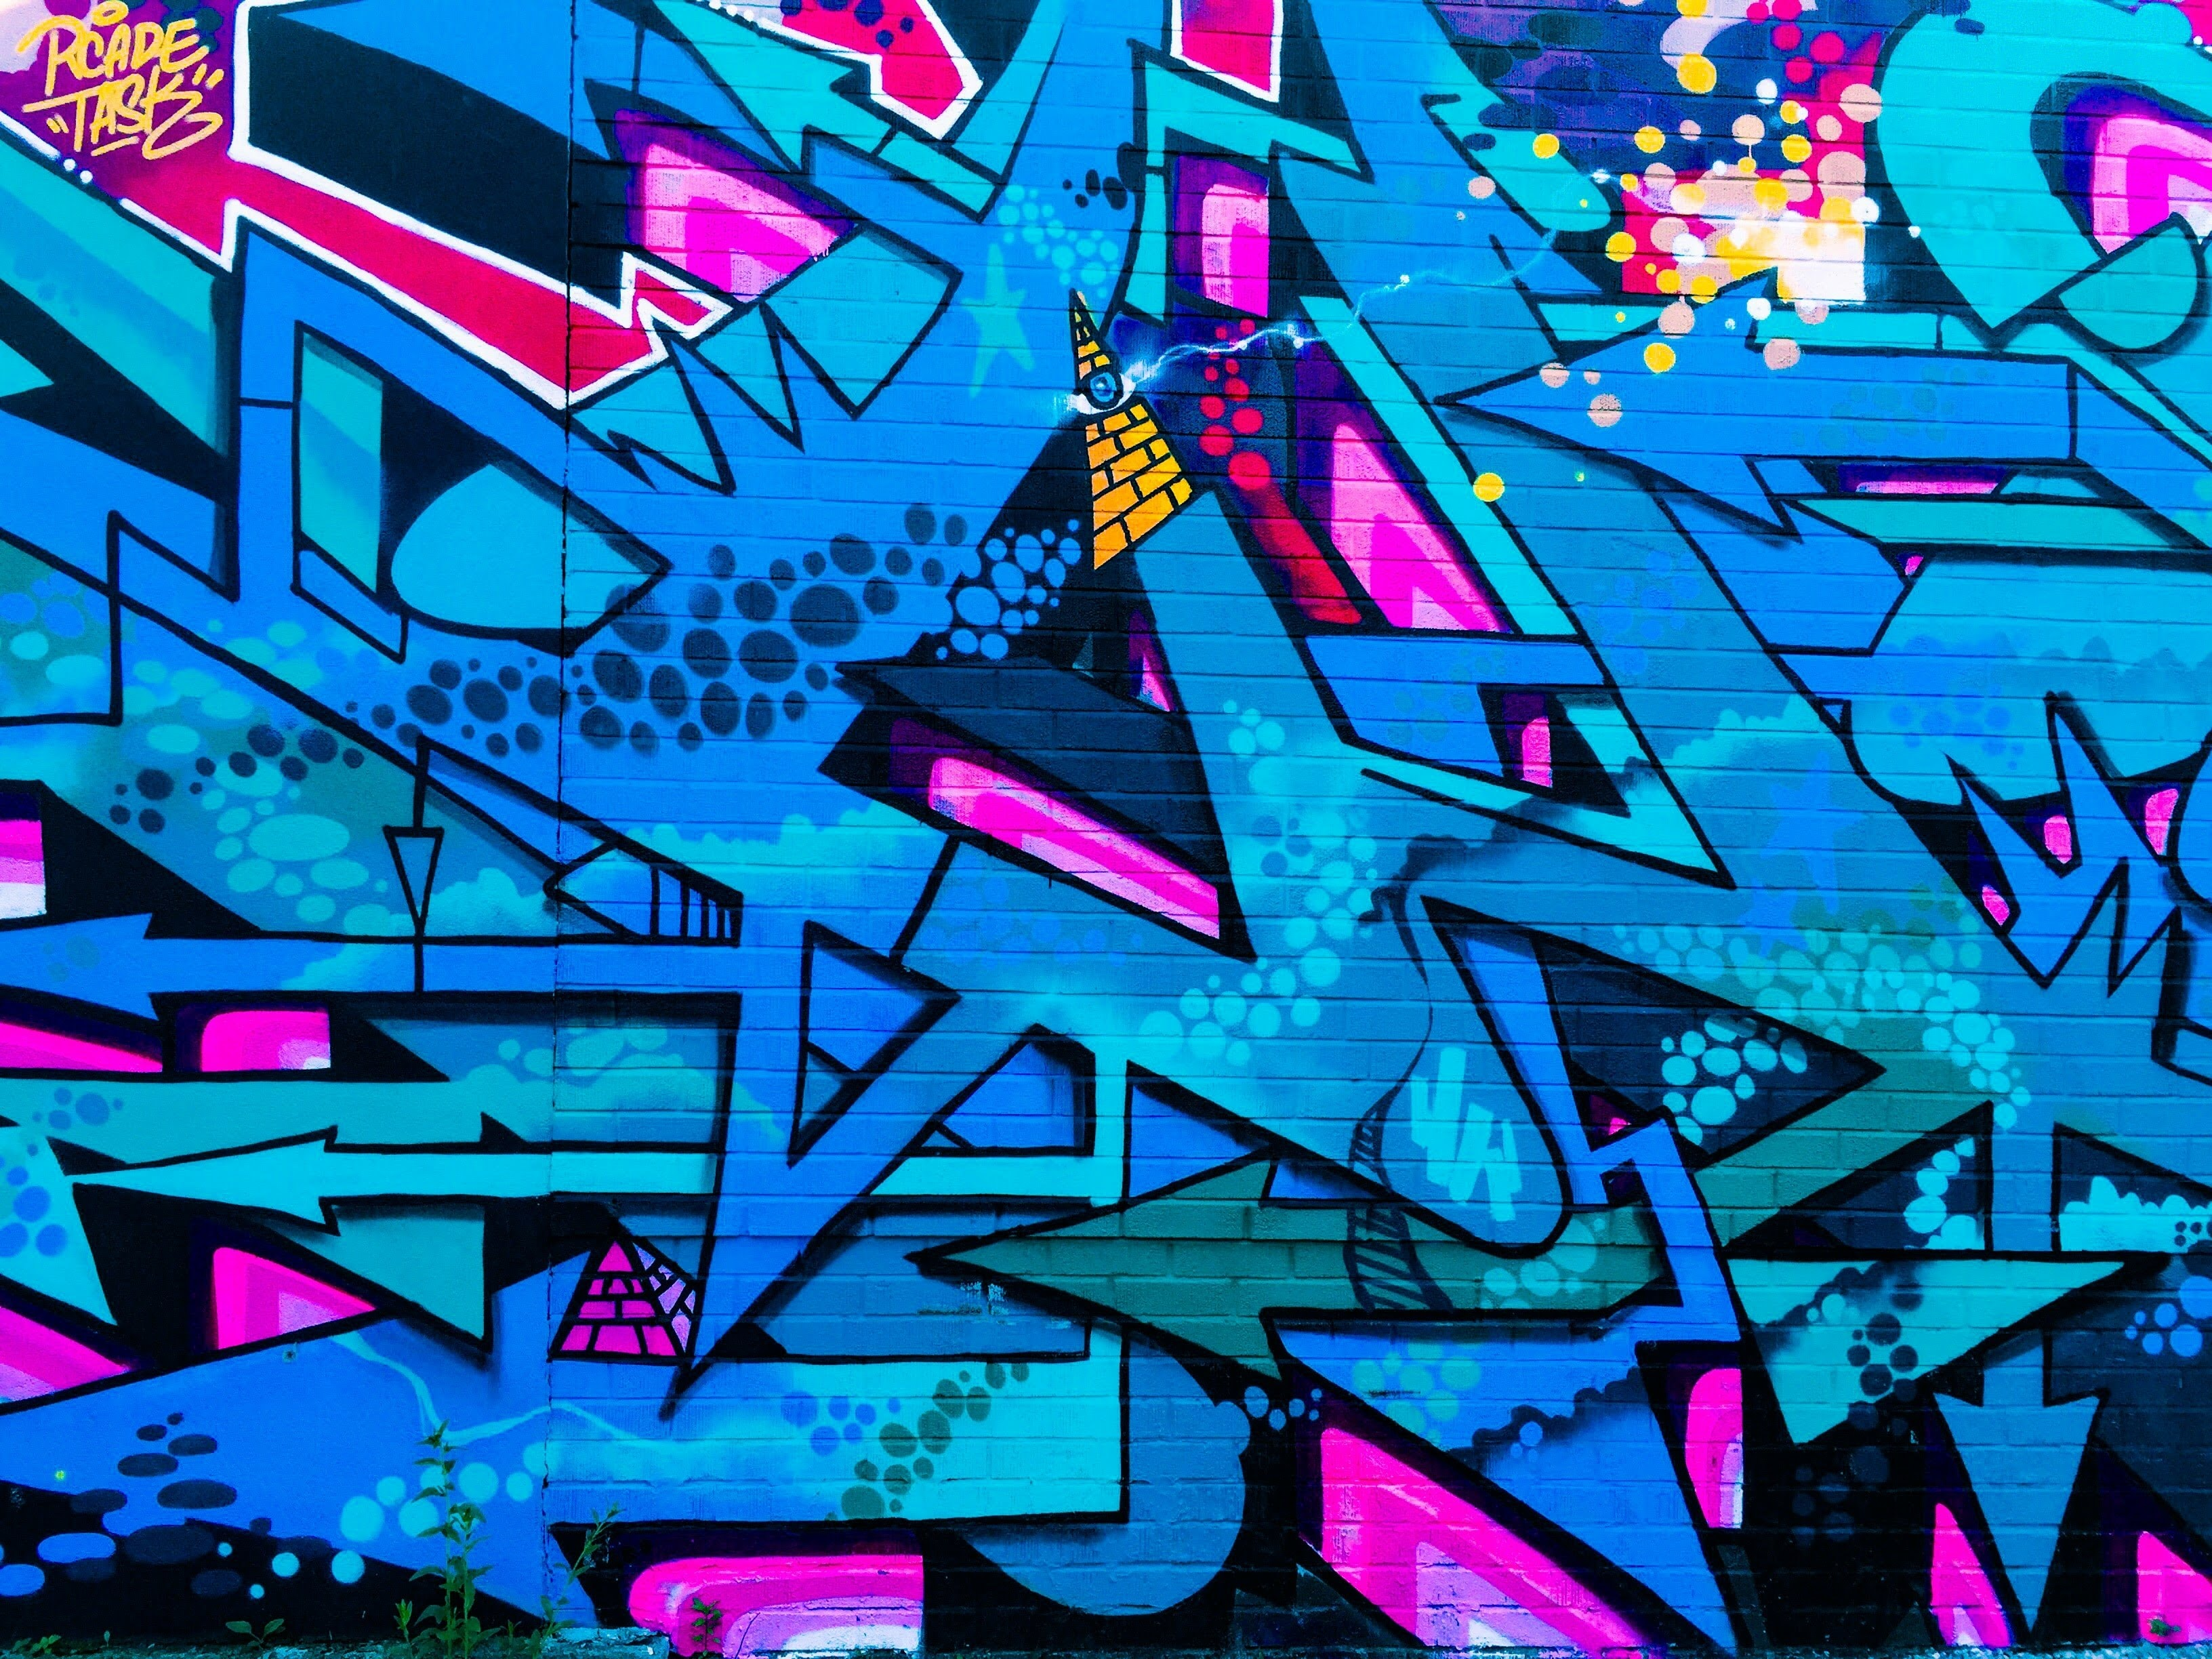 blue, pink, and black abstract painting